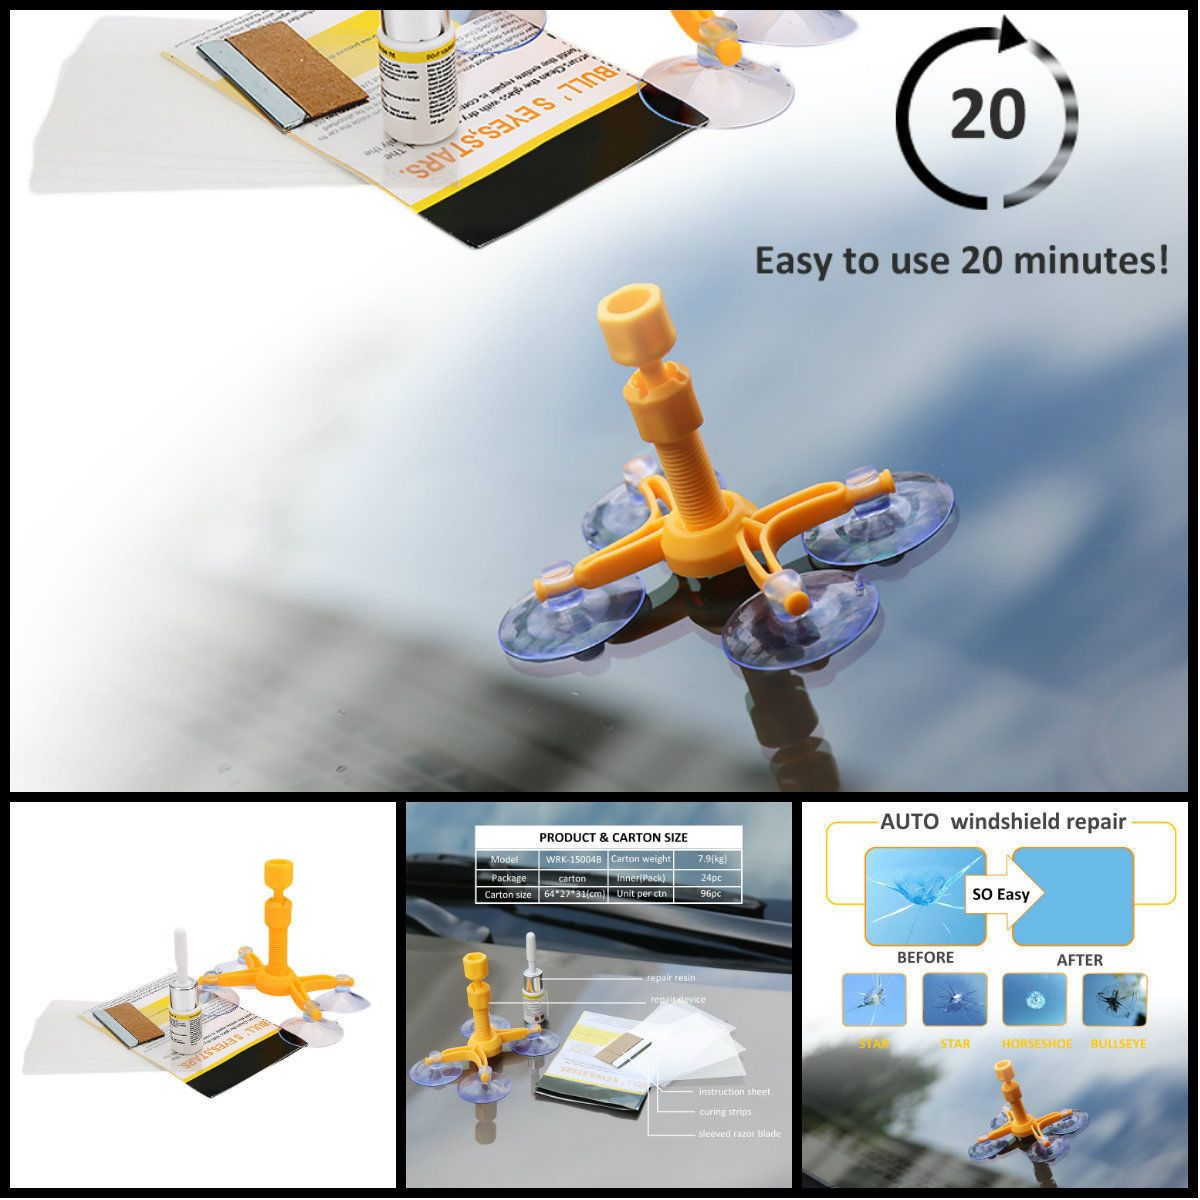 Get The Ultra Repair Kit Can Repair Cracked Phone Screen Windshield Any Glass Ebay Cracked Phone Screen Windshield Repair Car Windshield Repair